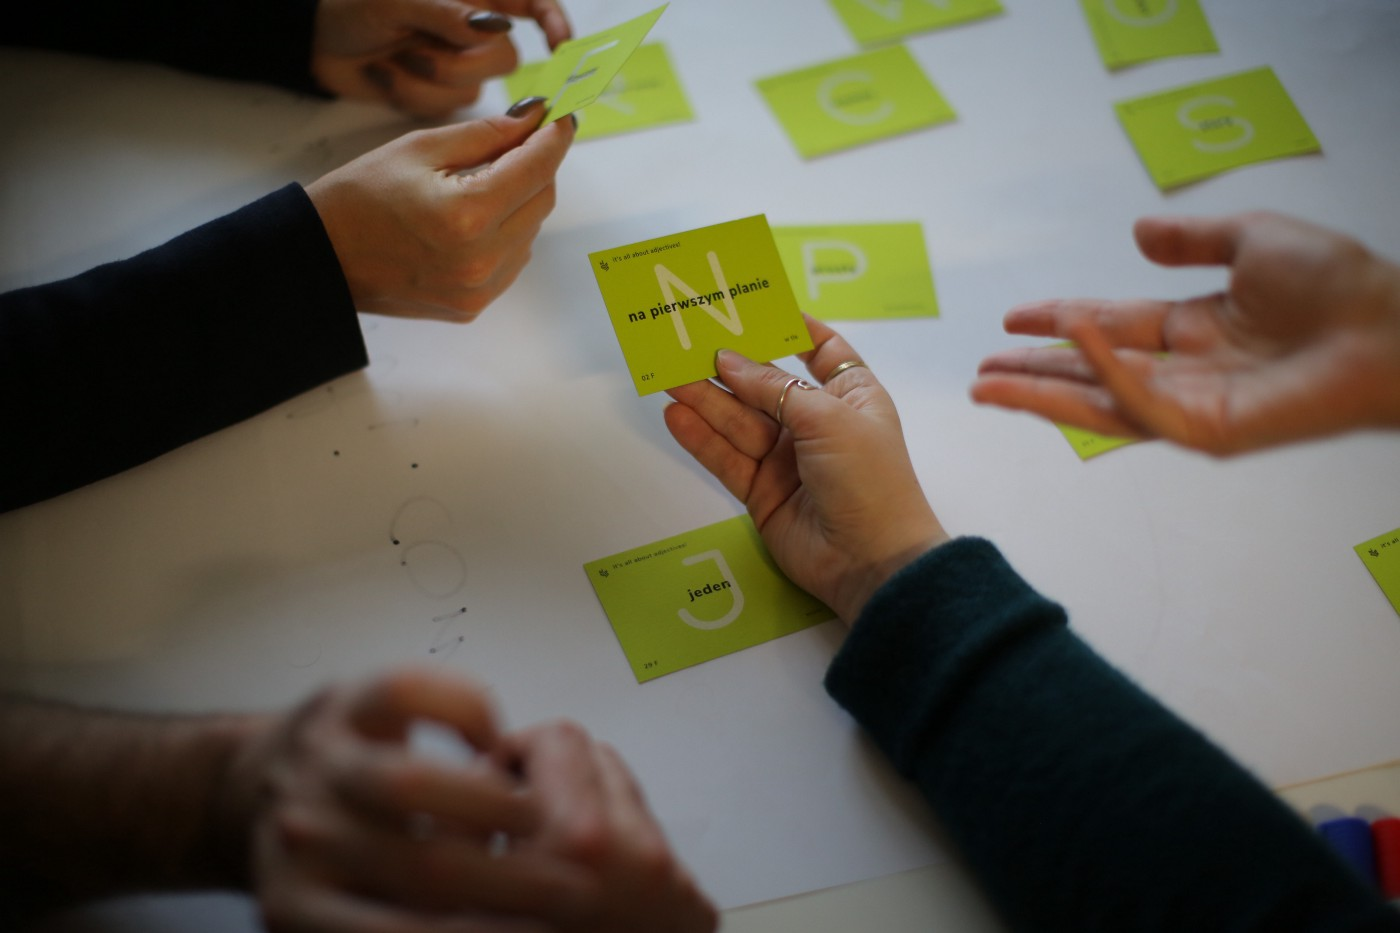 A group of people holding green cards with adjectives describing the differentiators for the solution they design.